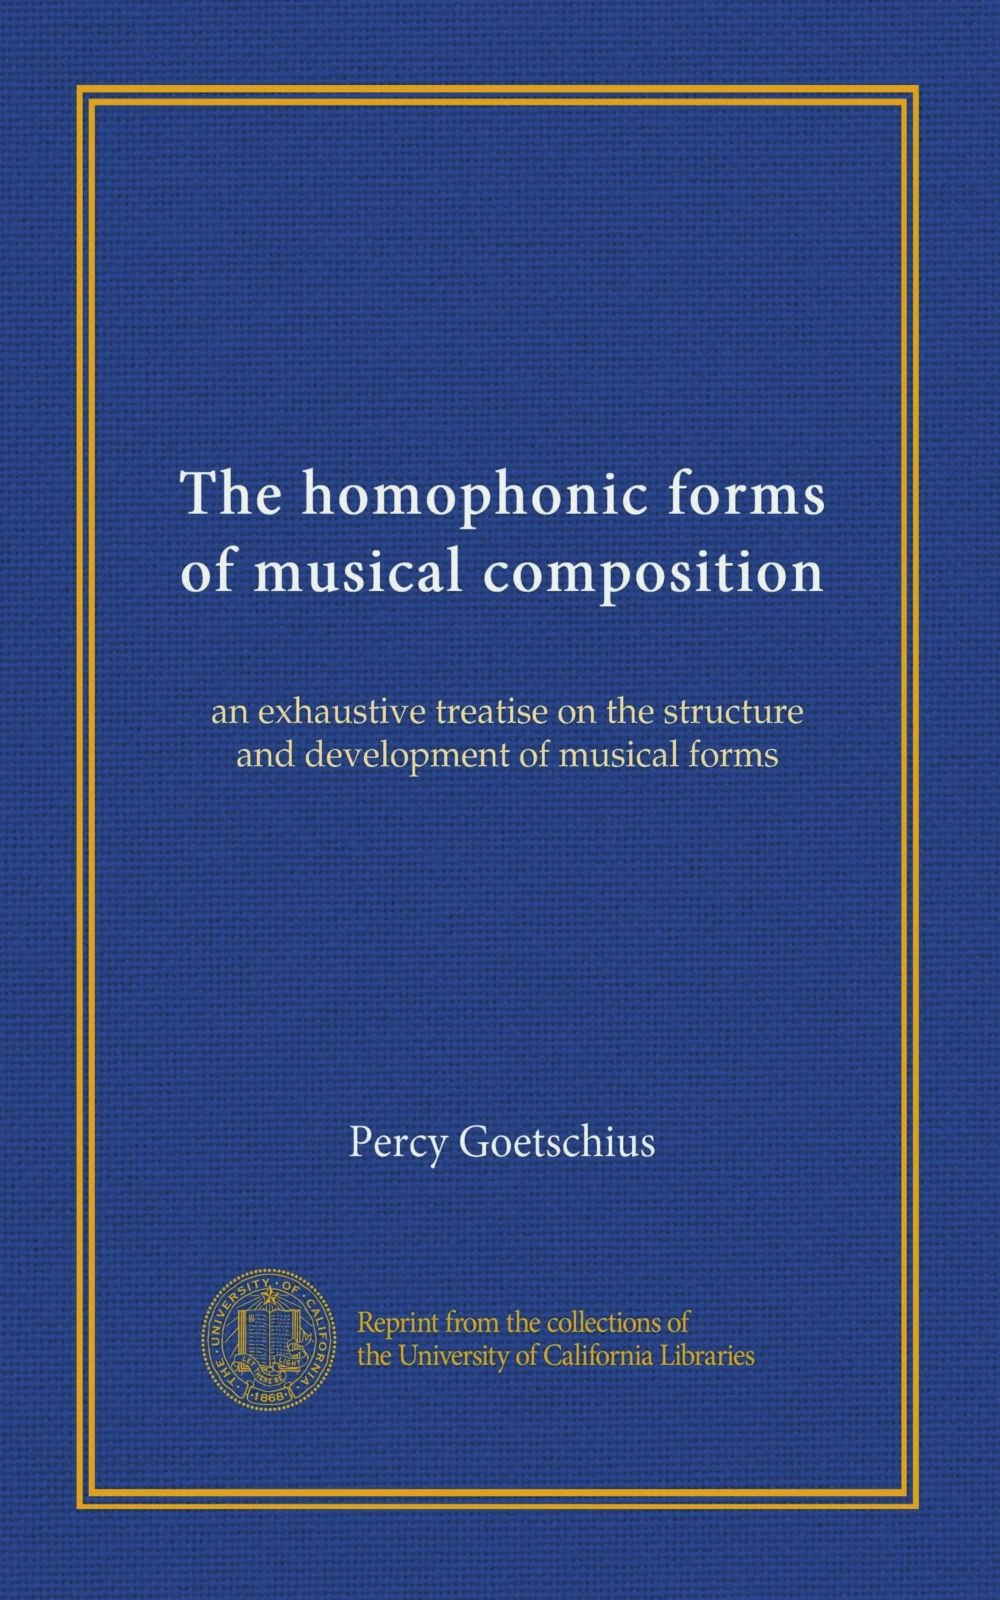 Download The homophonic forms of musical composition: an exhaustive treatise on the structure and development of musical forms pdf epub